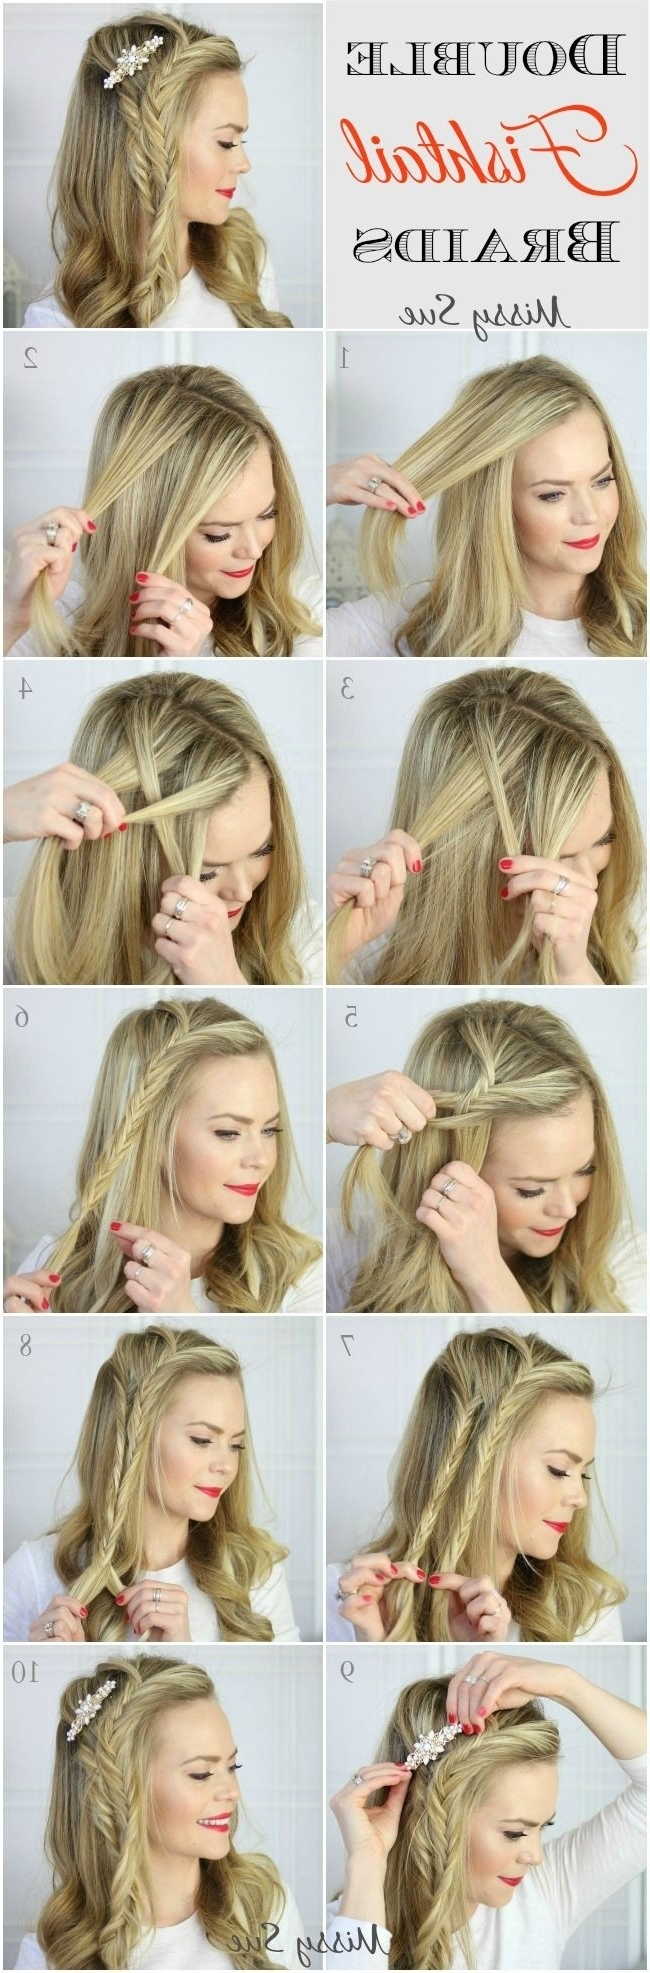 12 Amazing French Braid Hairstyles Tutorials – Pretty Designs With Popular French Braids Crown And Side Fishtail (View 1 of 15)